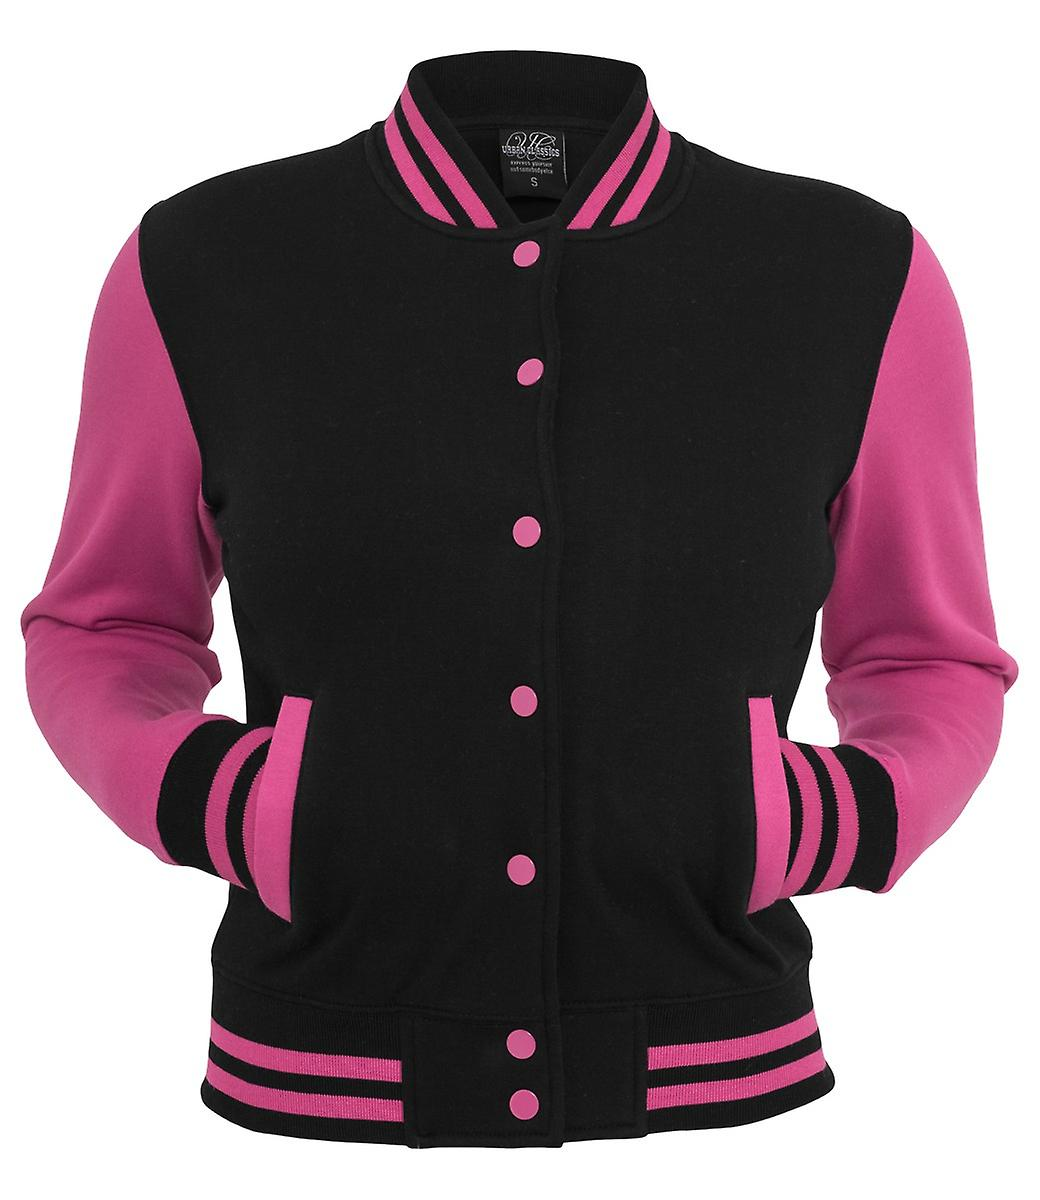 Urban Classics Ladies 2-tone College Sweatjacket